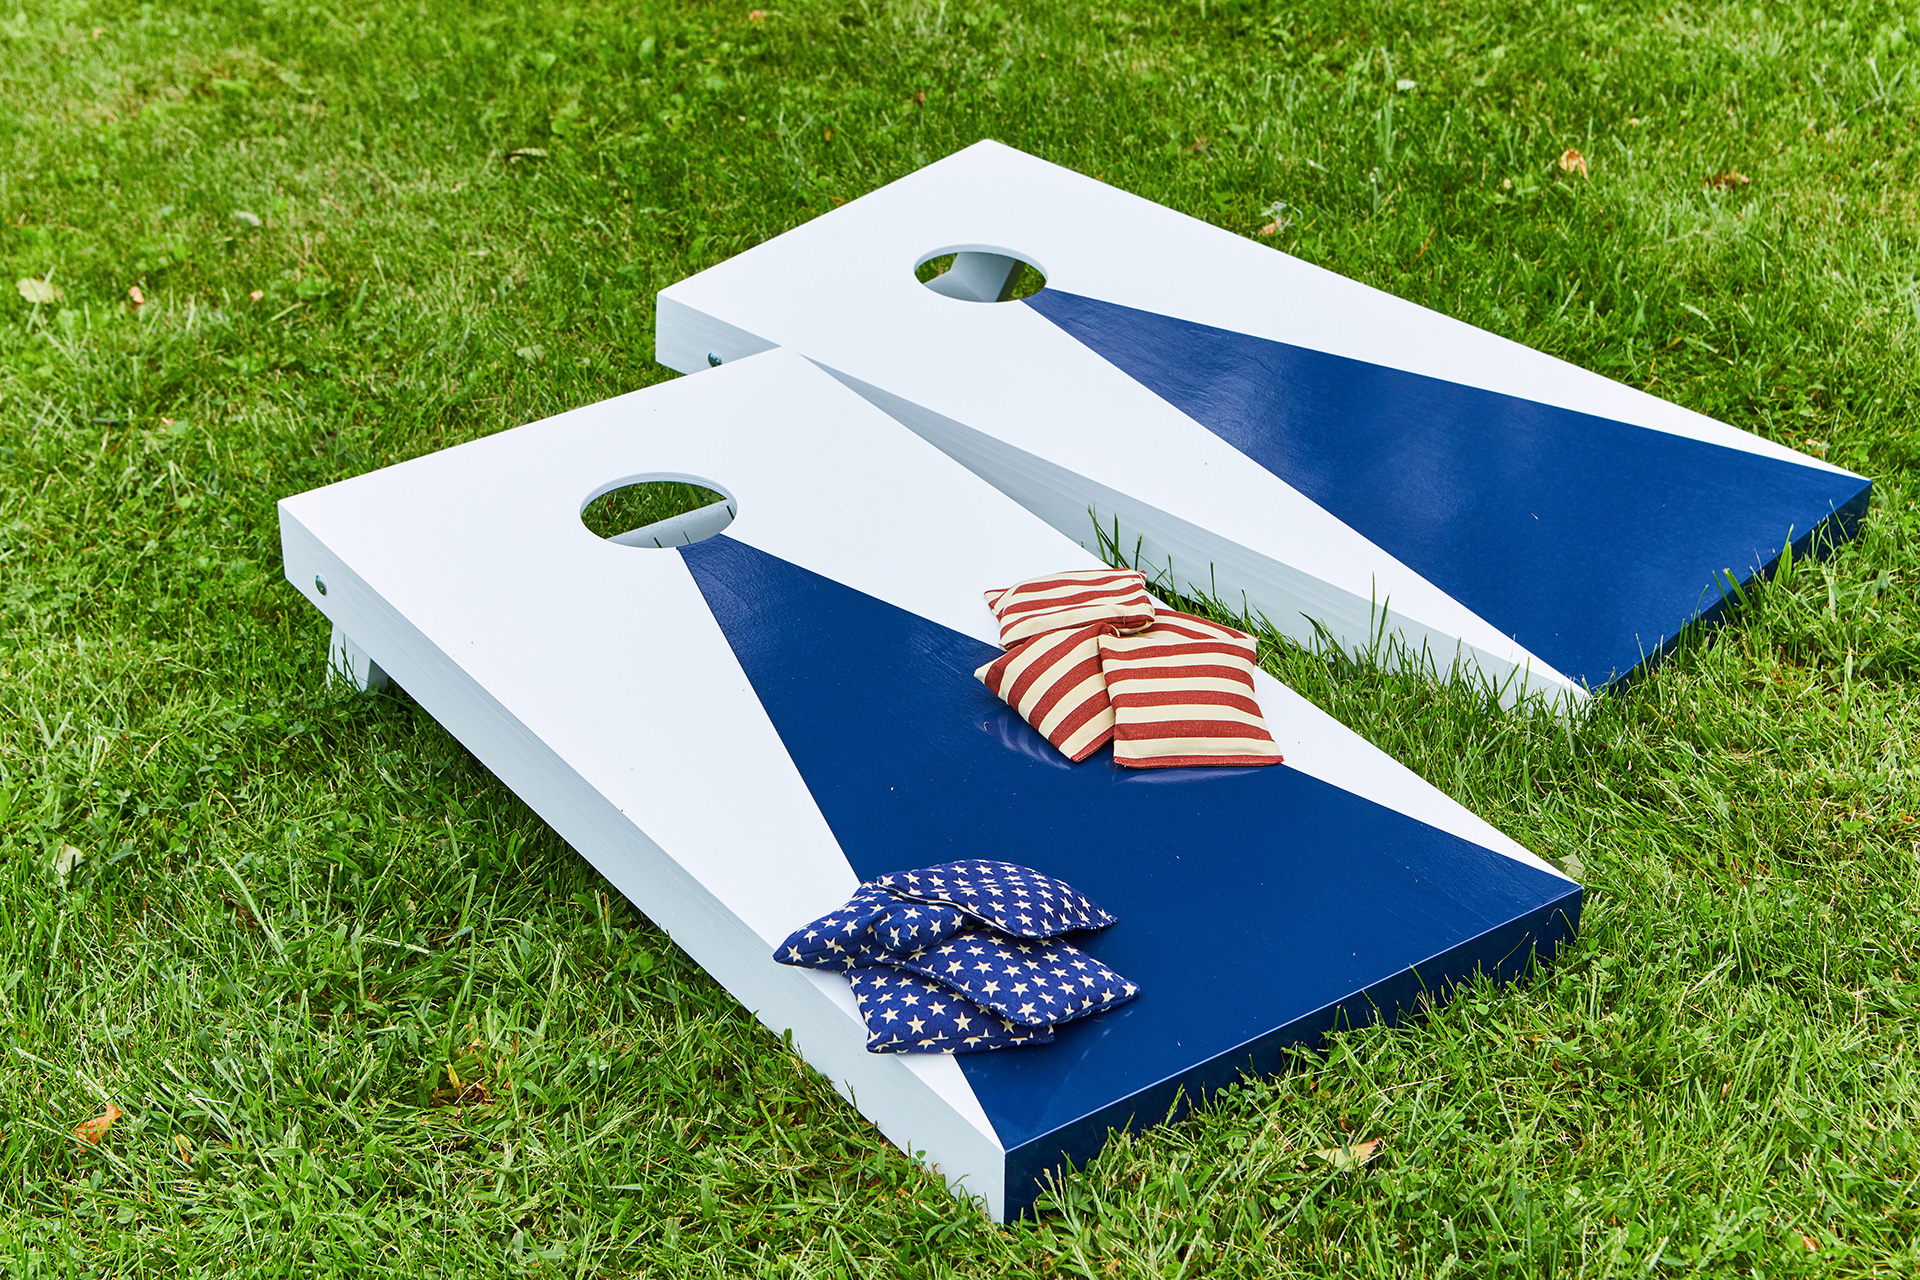 blue corn hole set with bags